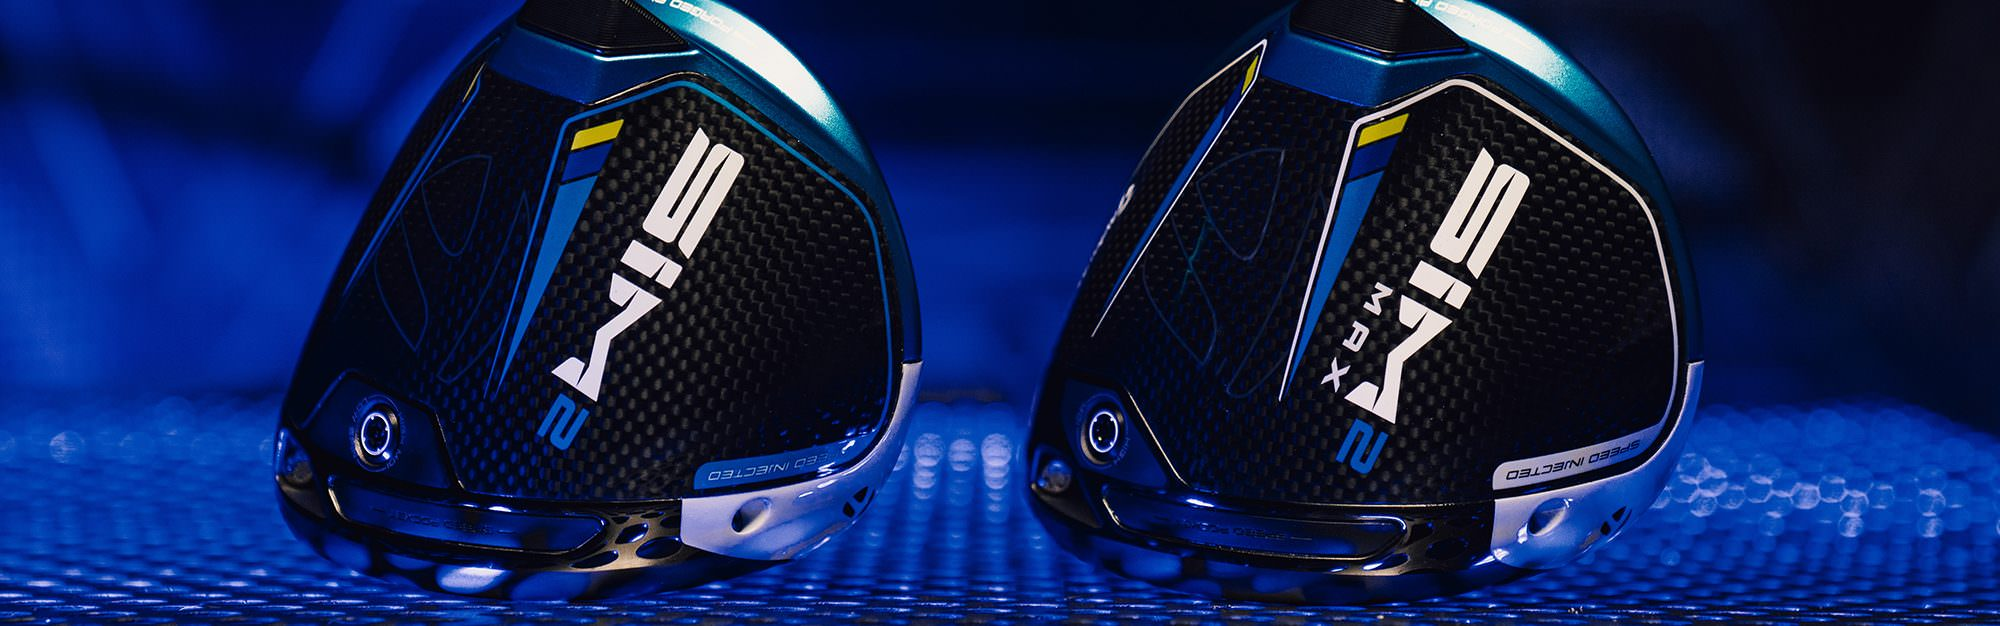 The TaylorMade SIM driver is back and packed with new technology - so what's changed?